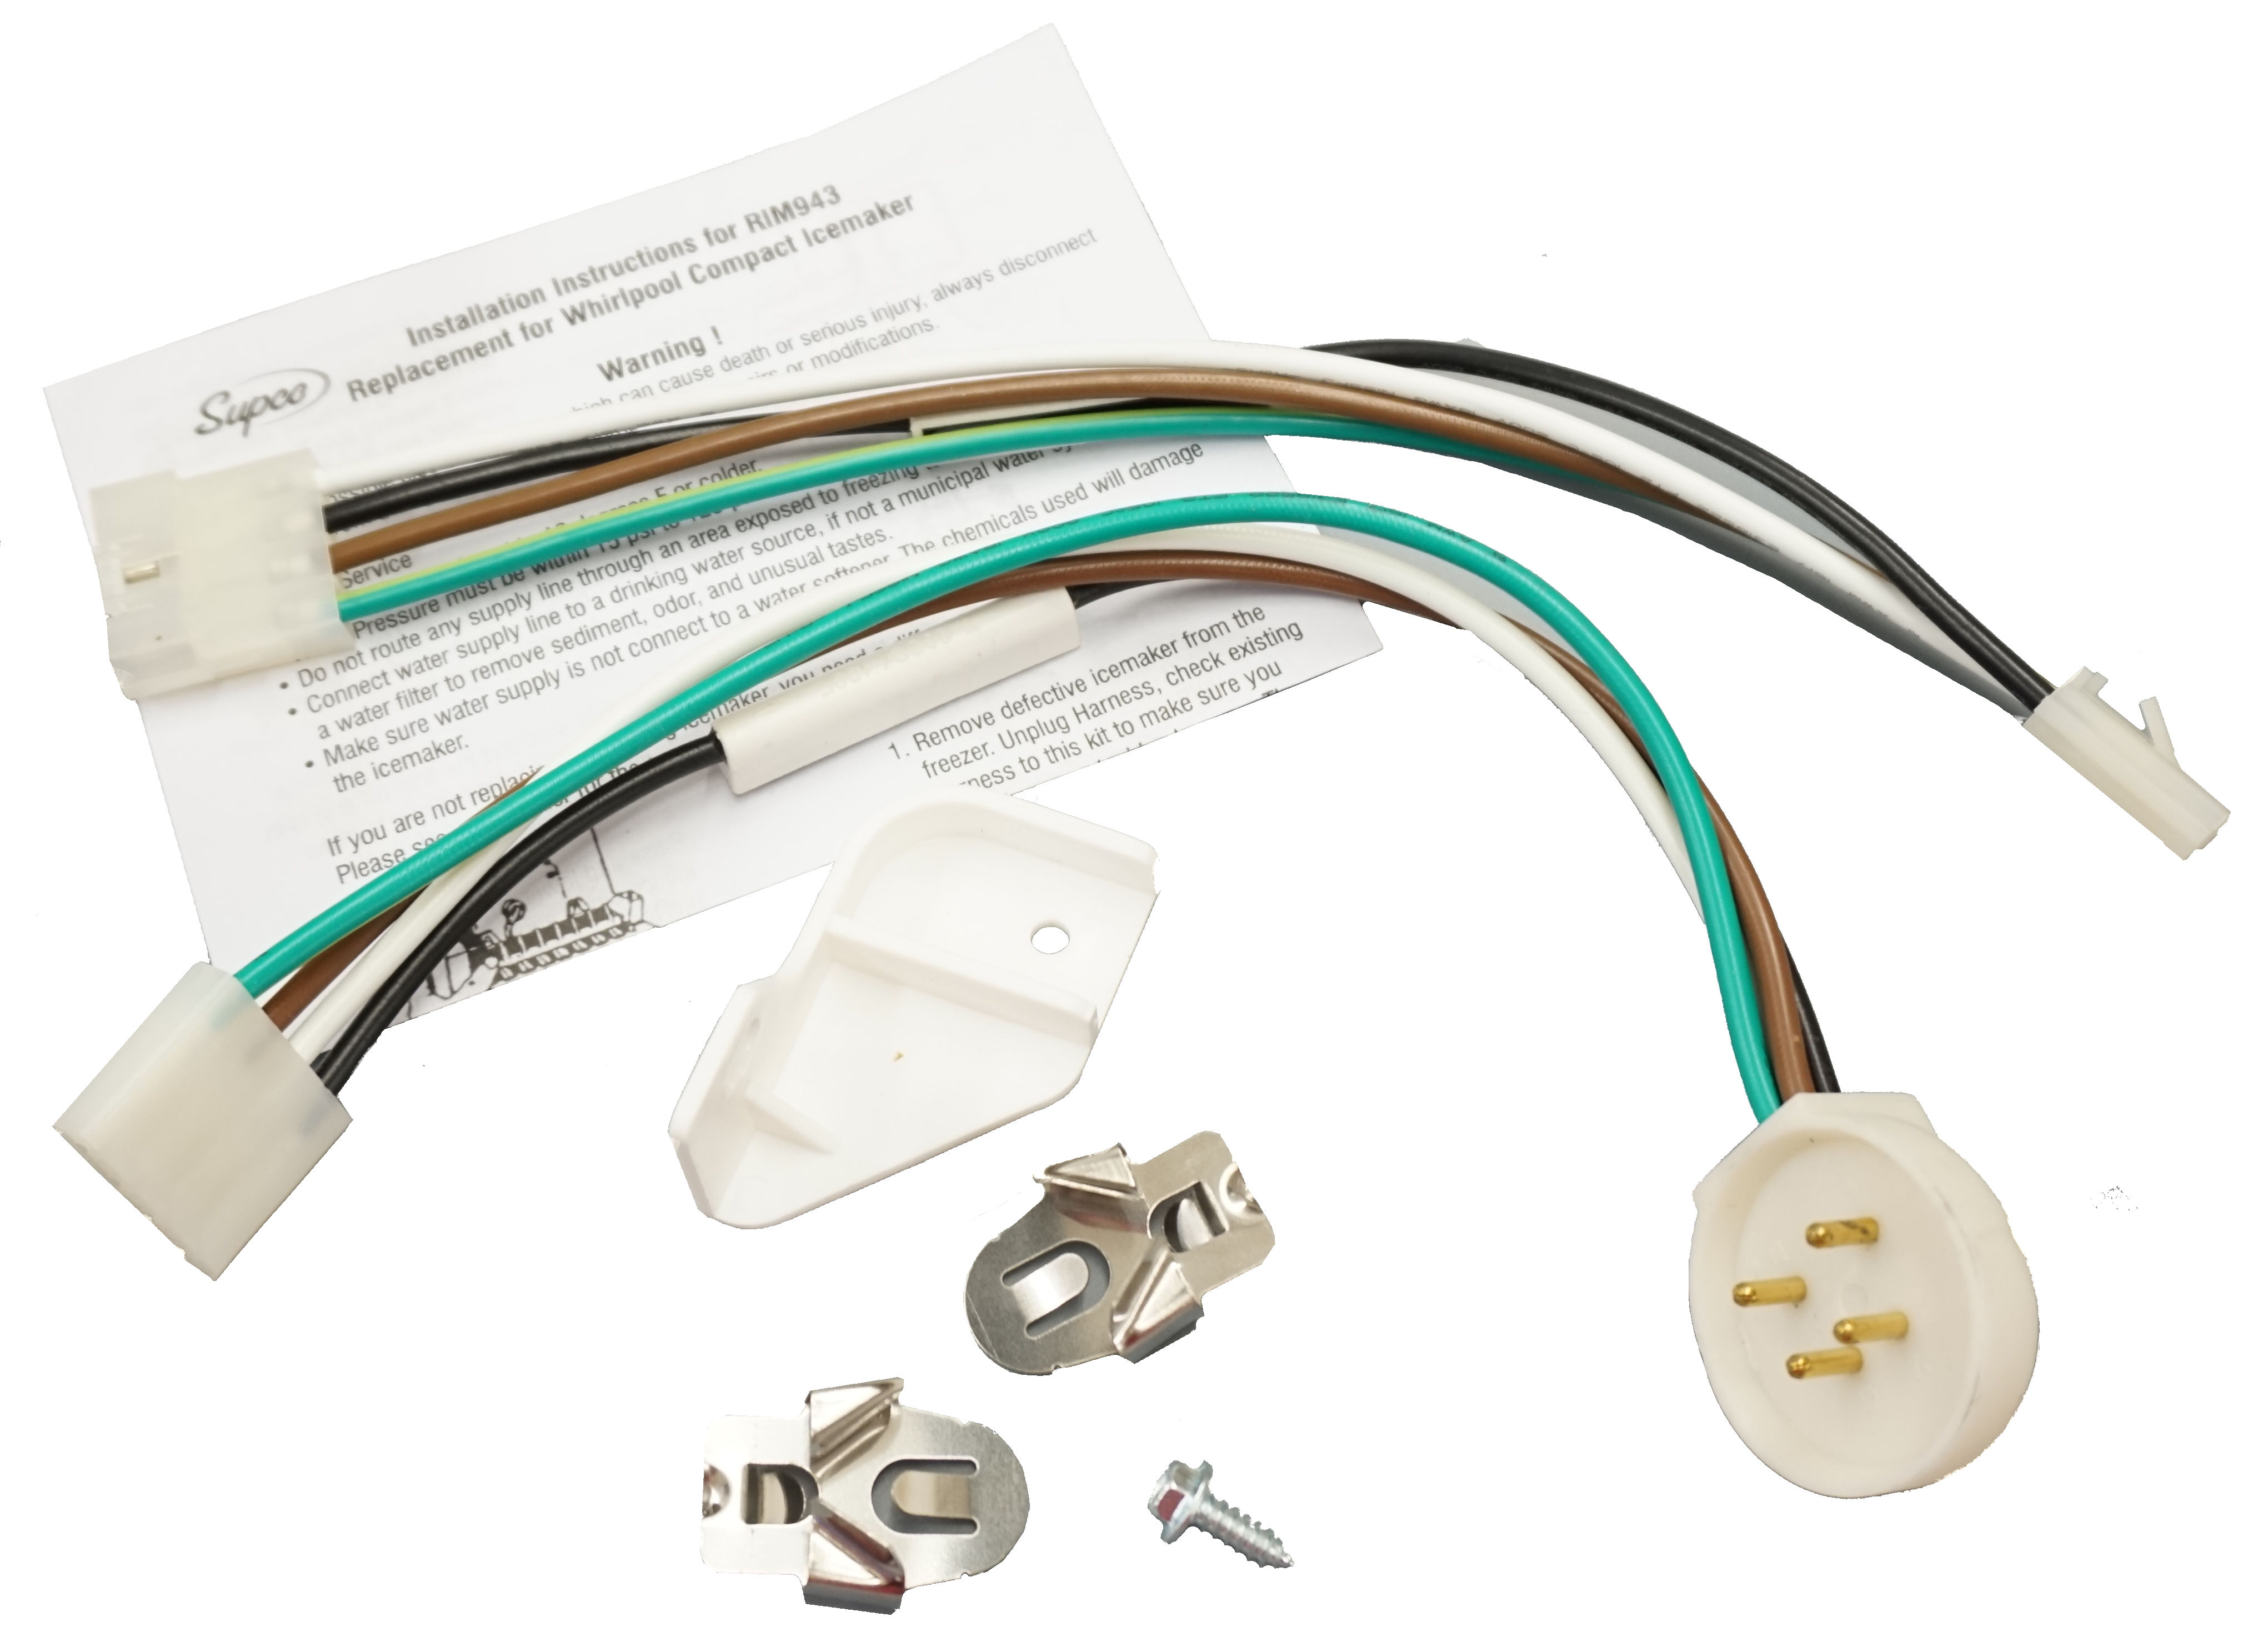 Supco Rim943 Replacement For Whirlpool 4317943 Ice Maker Wiring Harness